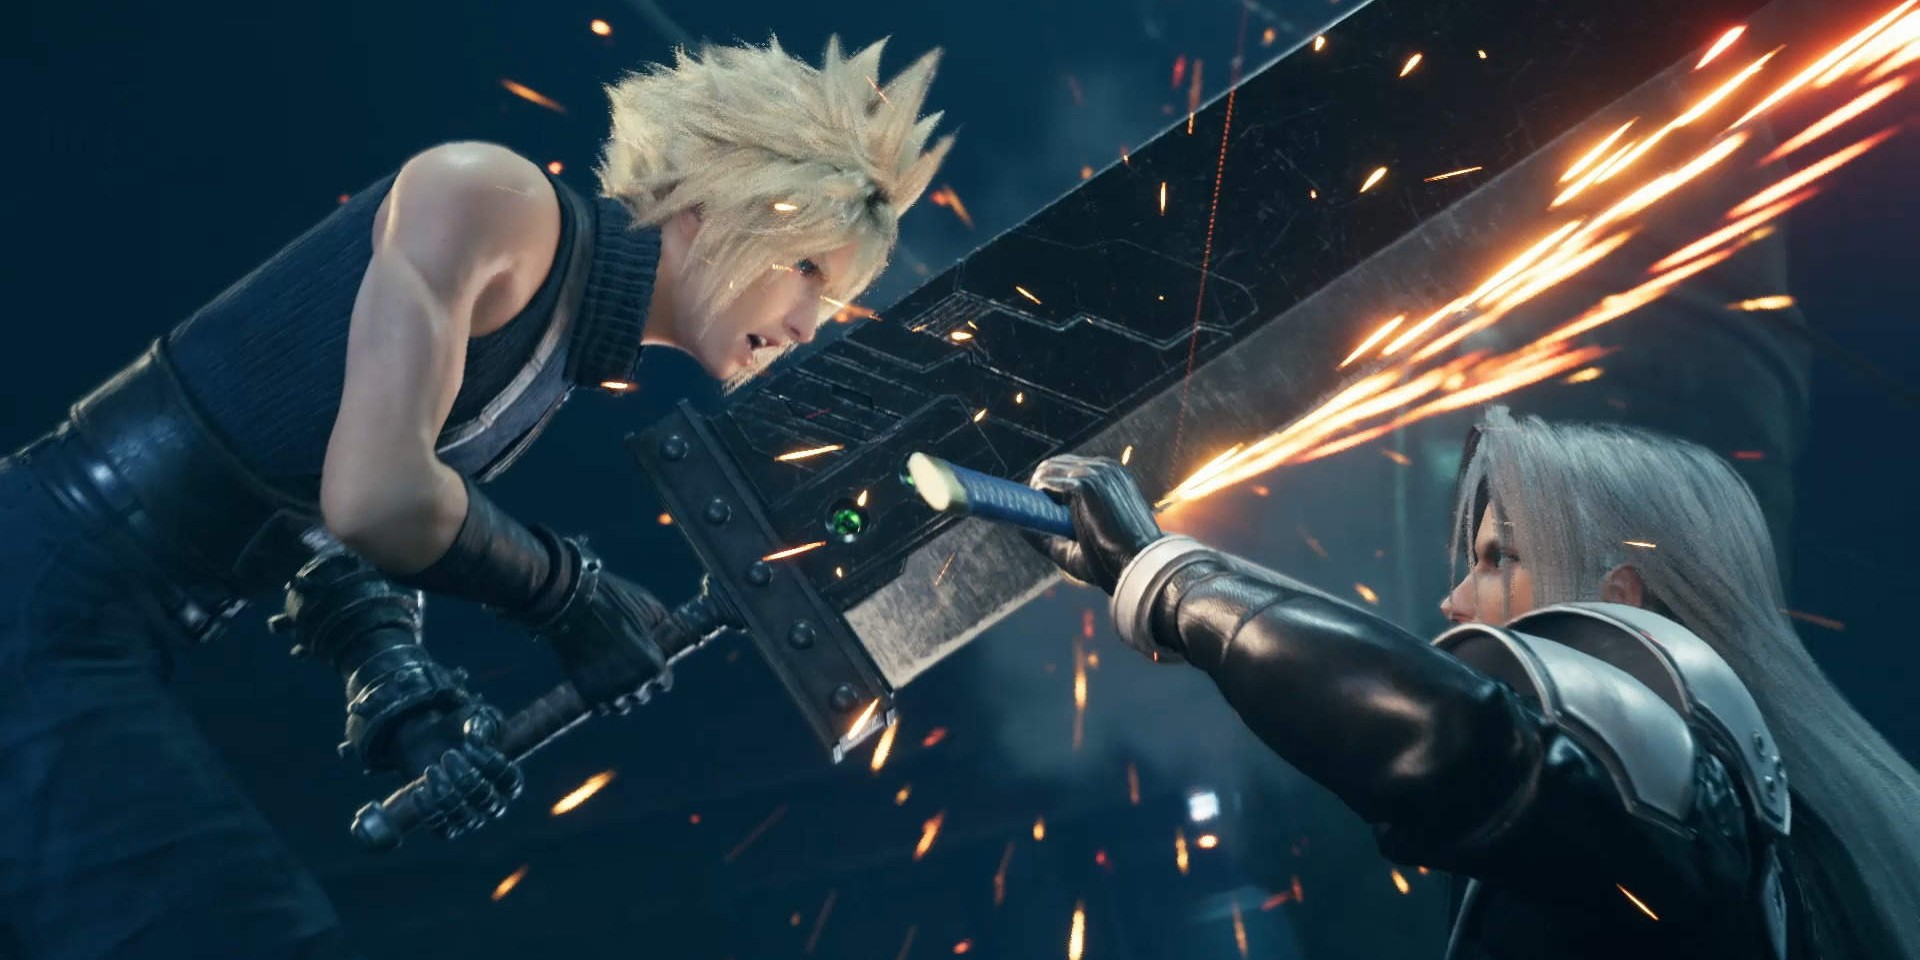 Final Fantasy VII Remake wins Best Score and Music at the Game Awards 2020